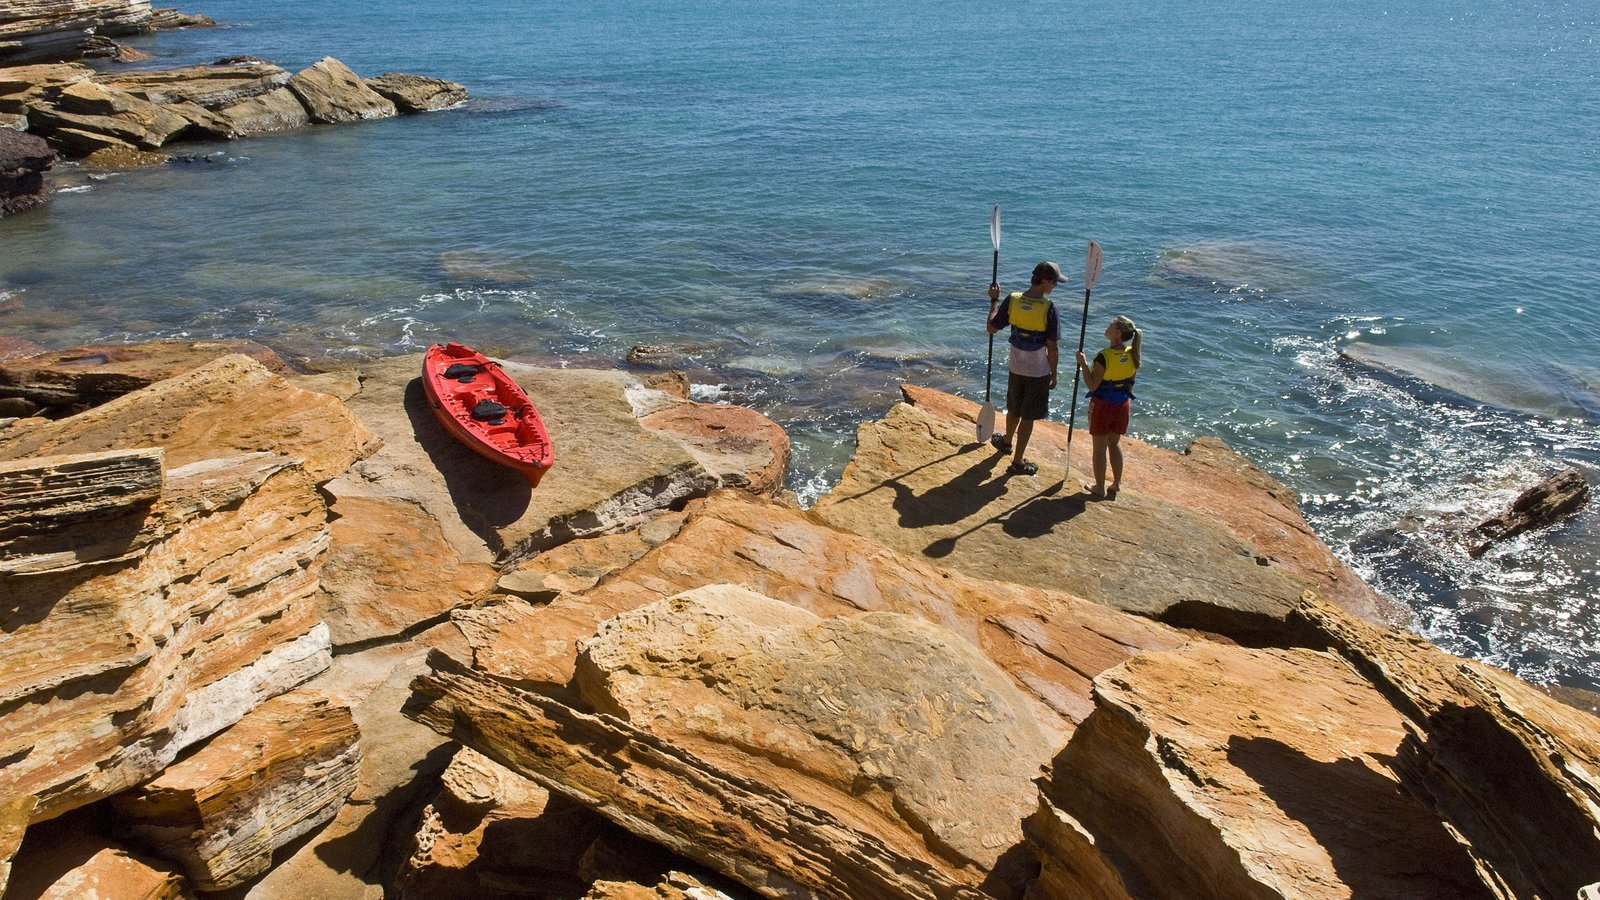 Broome featuring rugged coastline and kayaking or canoeing as well as a couple